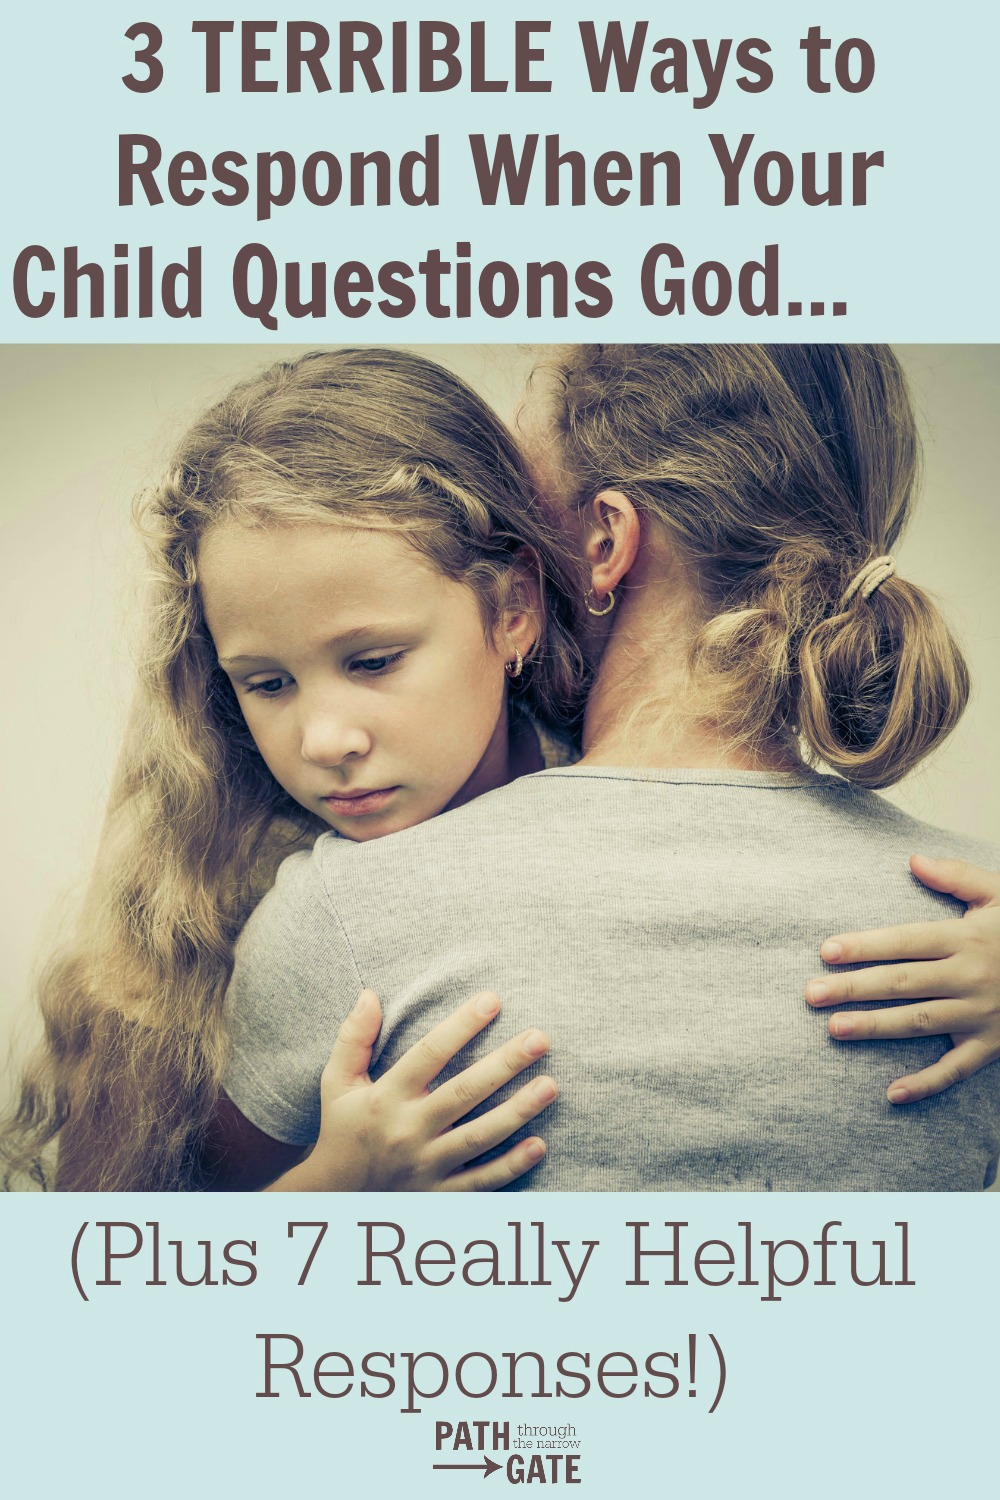 How would you respond if your child doubted God? Here are 3 TERRIBLE ways to respond when your child questions God, and 7 Responses that are really HELPFUL.